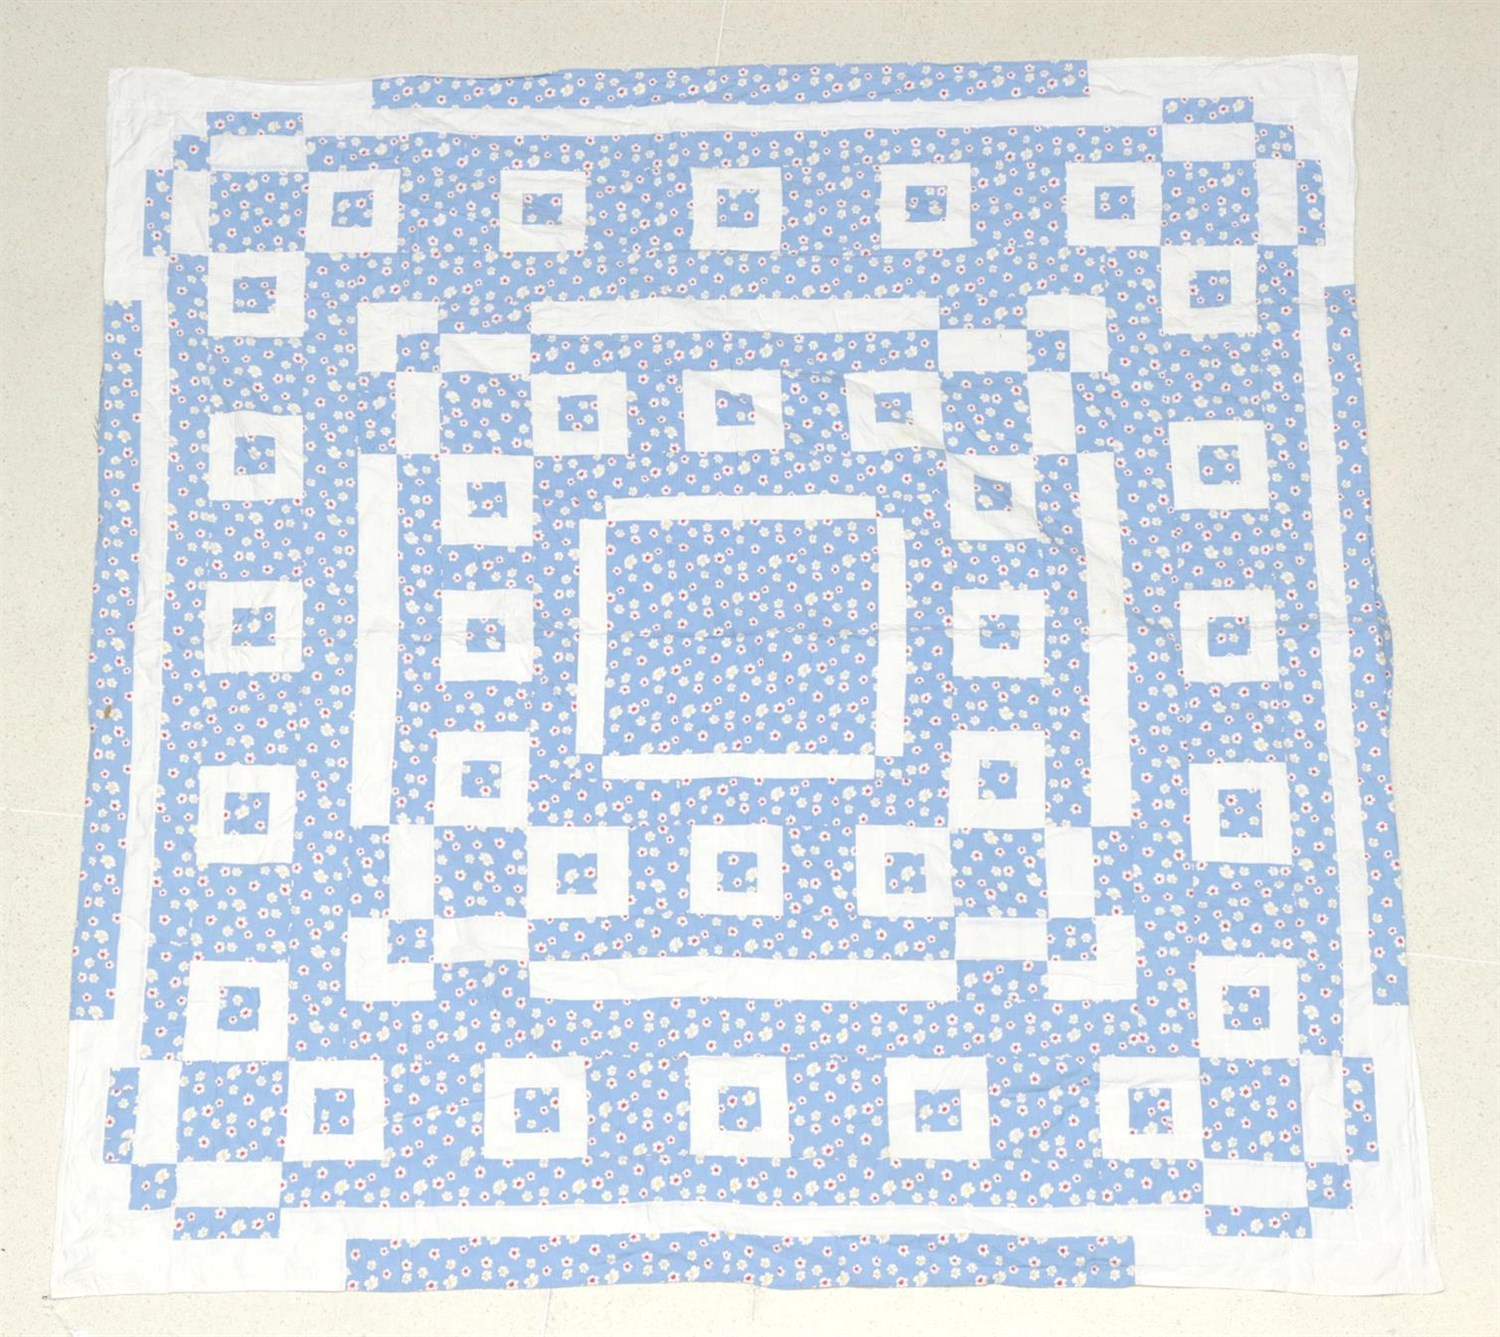 Lot 6034 - Early 20th Century Blue Floral Quilted Bed Cover, designed with white cotton squares  and...